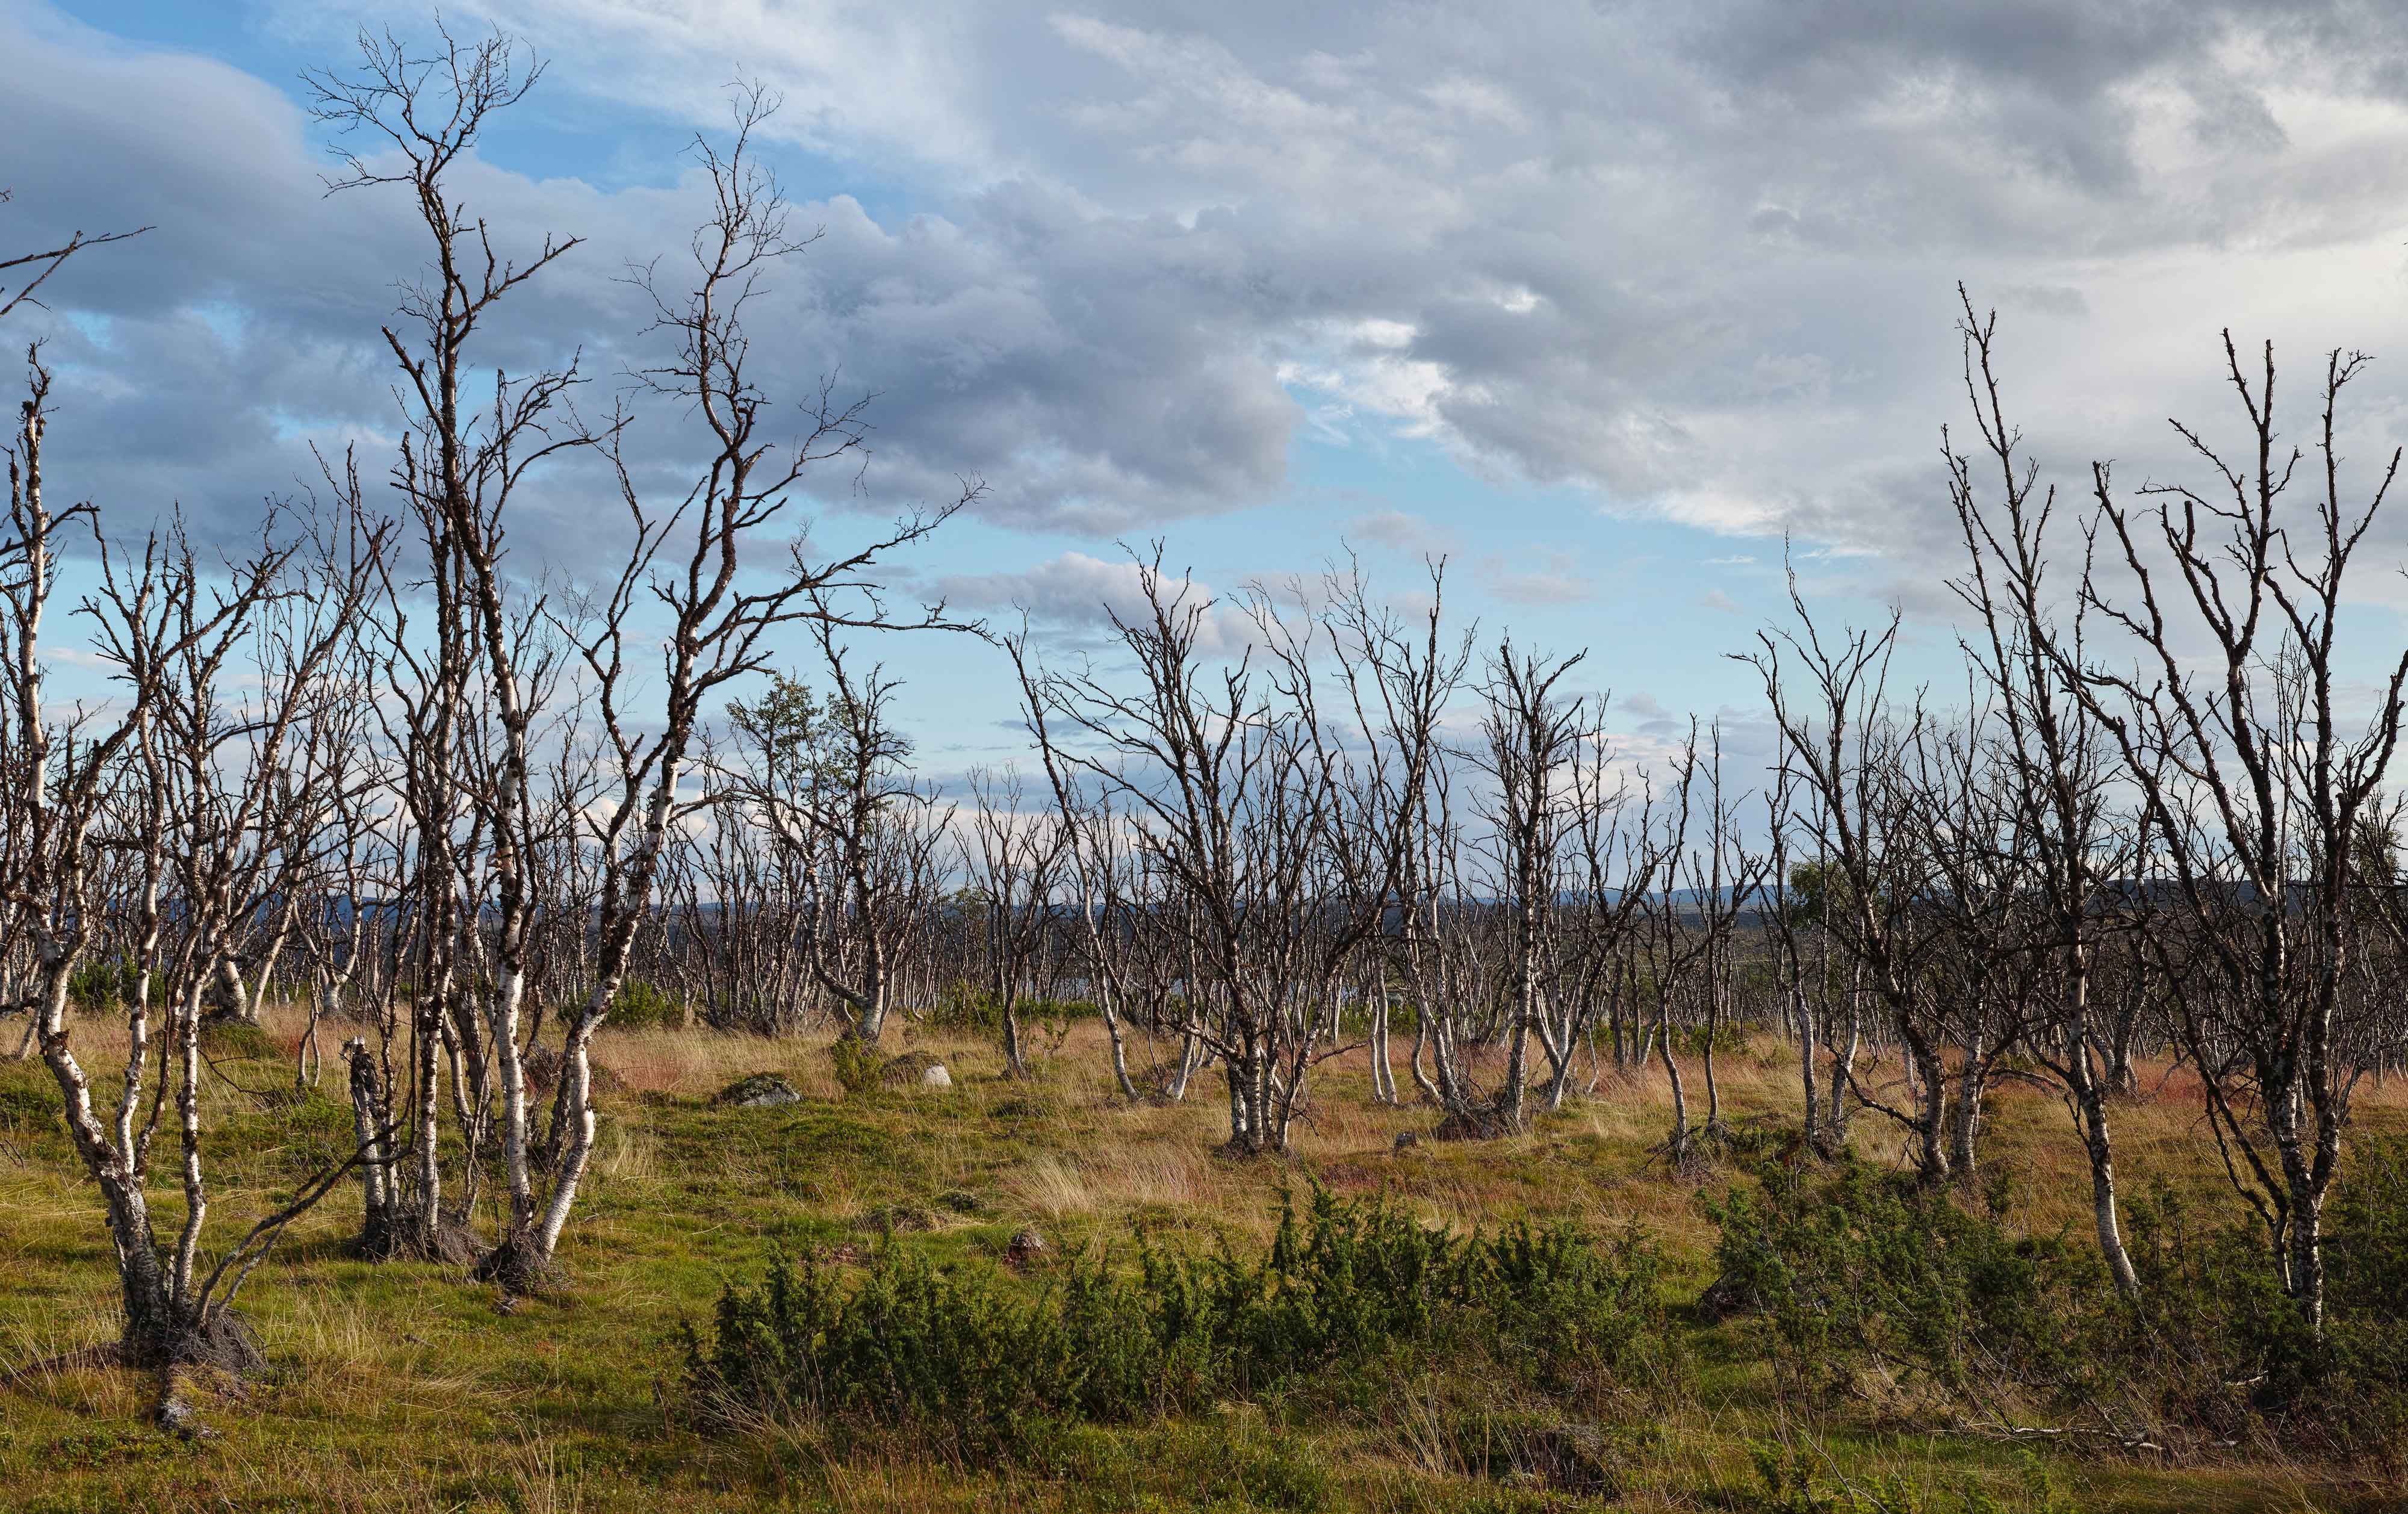 Mountain birch trees that have been killed by a moth outbreak in Eastern Finnmark, northern Norway,Photo: Jacob Iglhaut